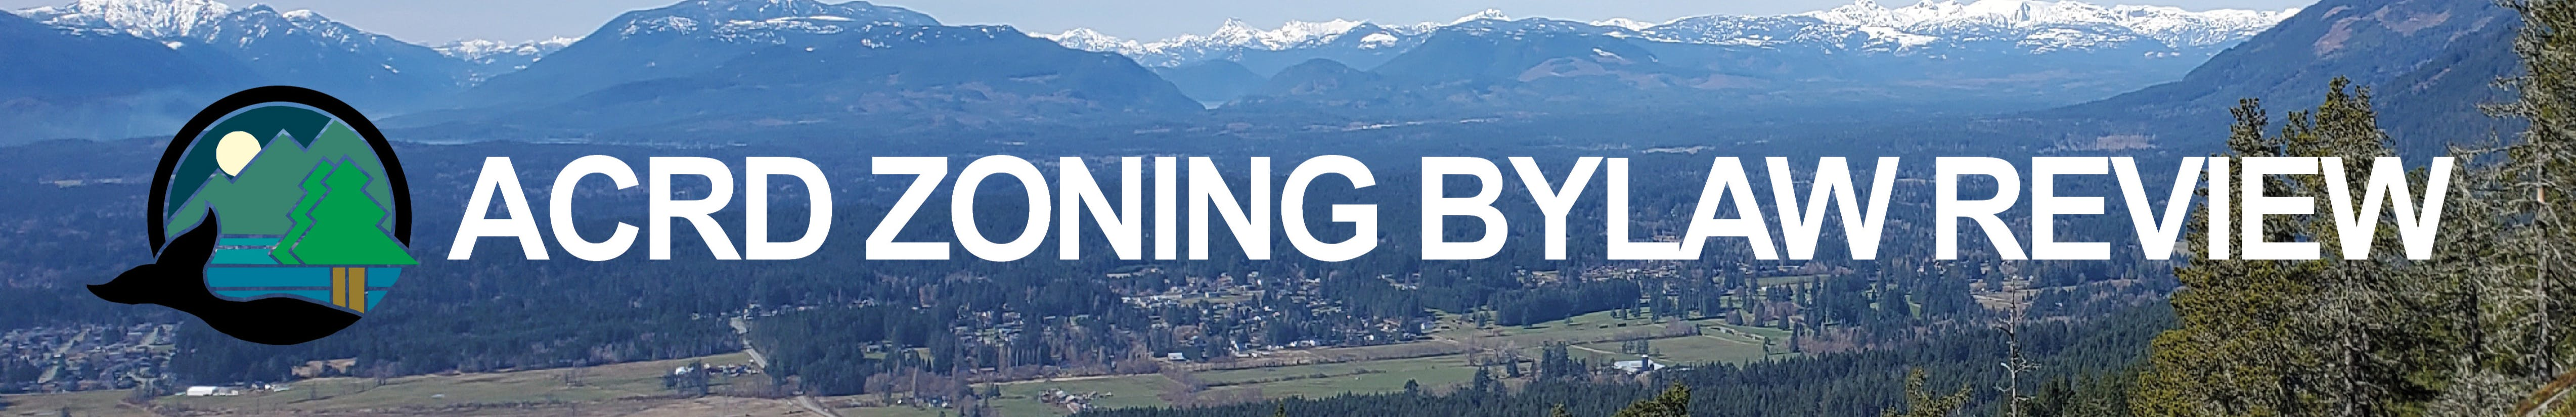 ACRD Zoning Bylaw Review